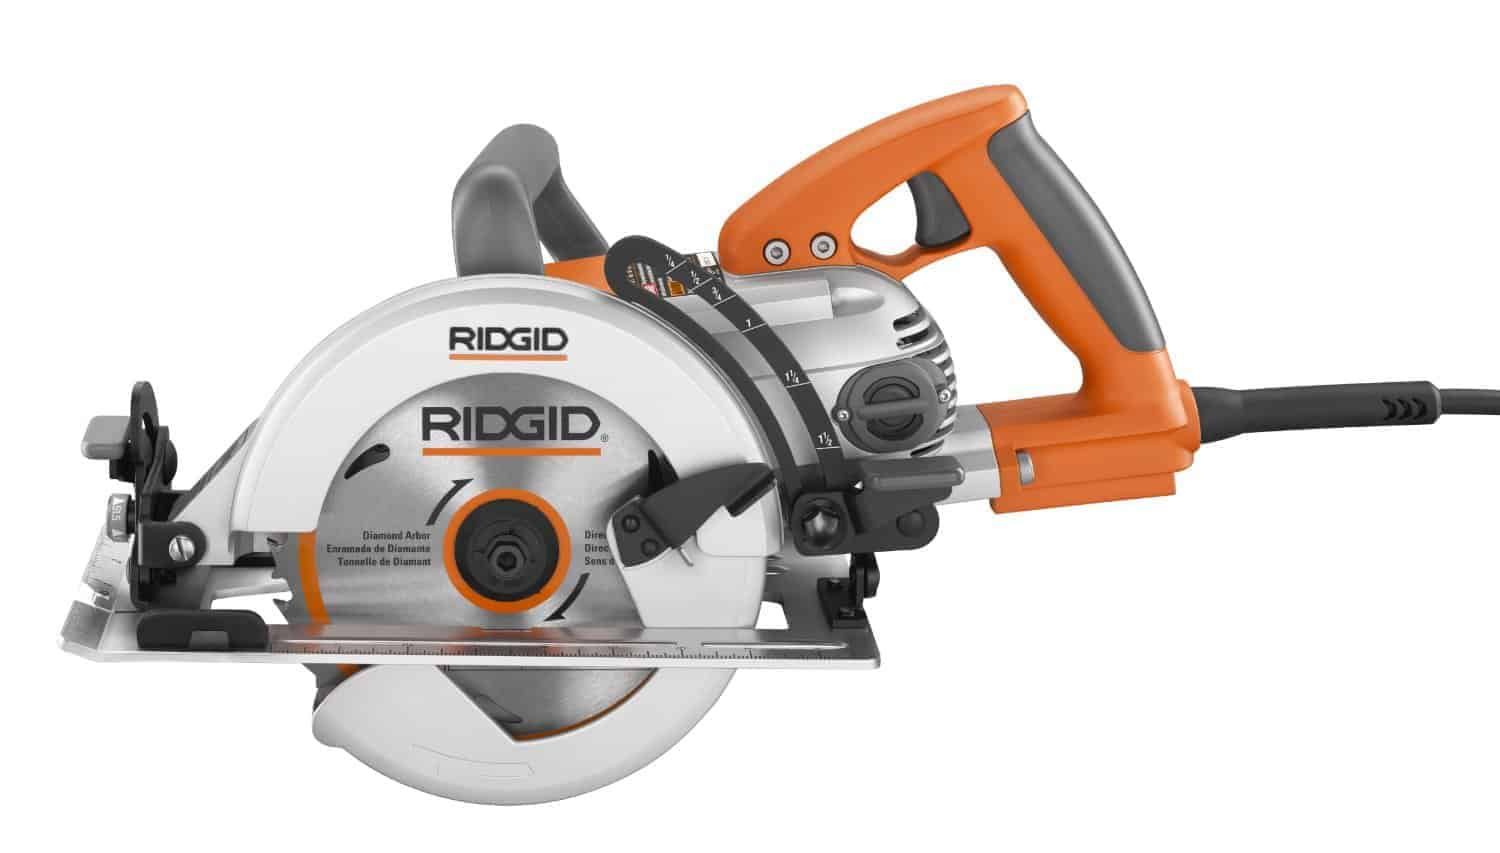 Ridgid Circular Saw Review The R3210 Us80